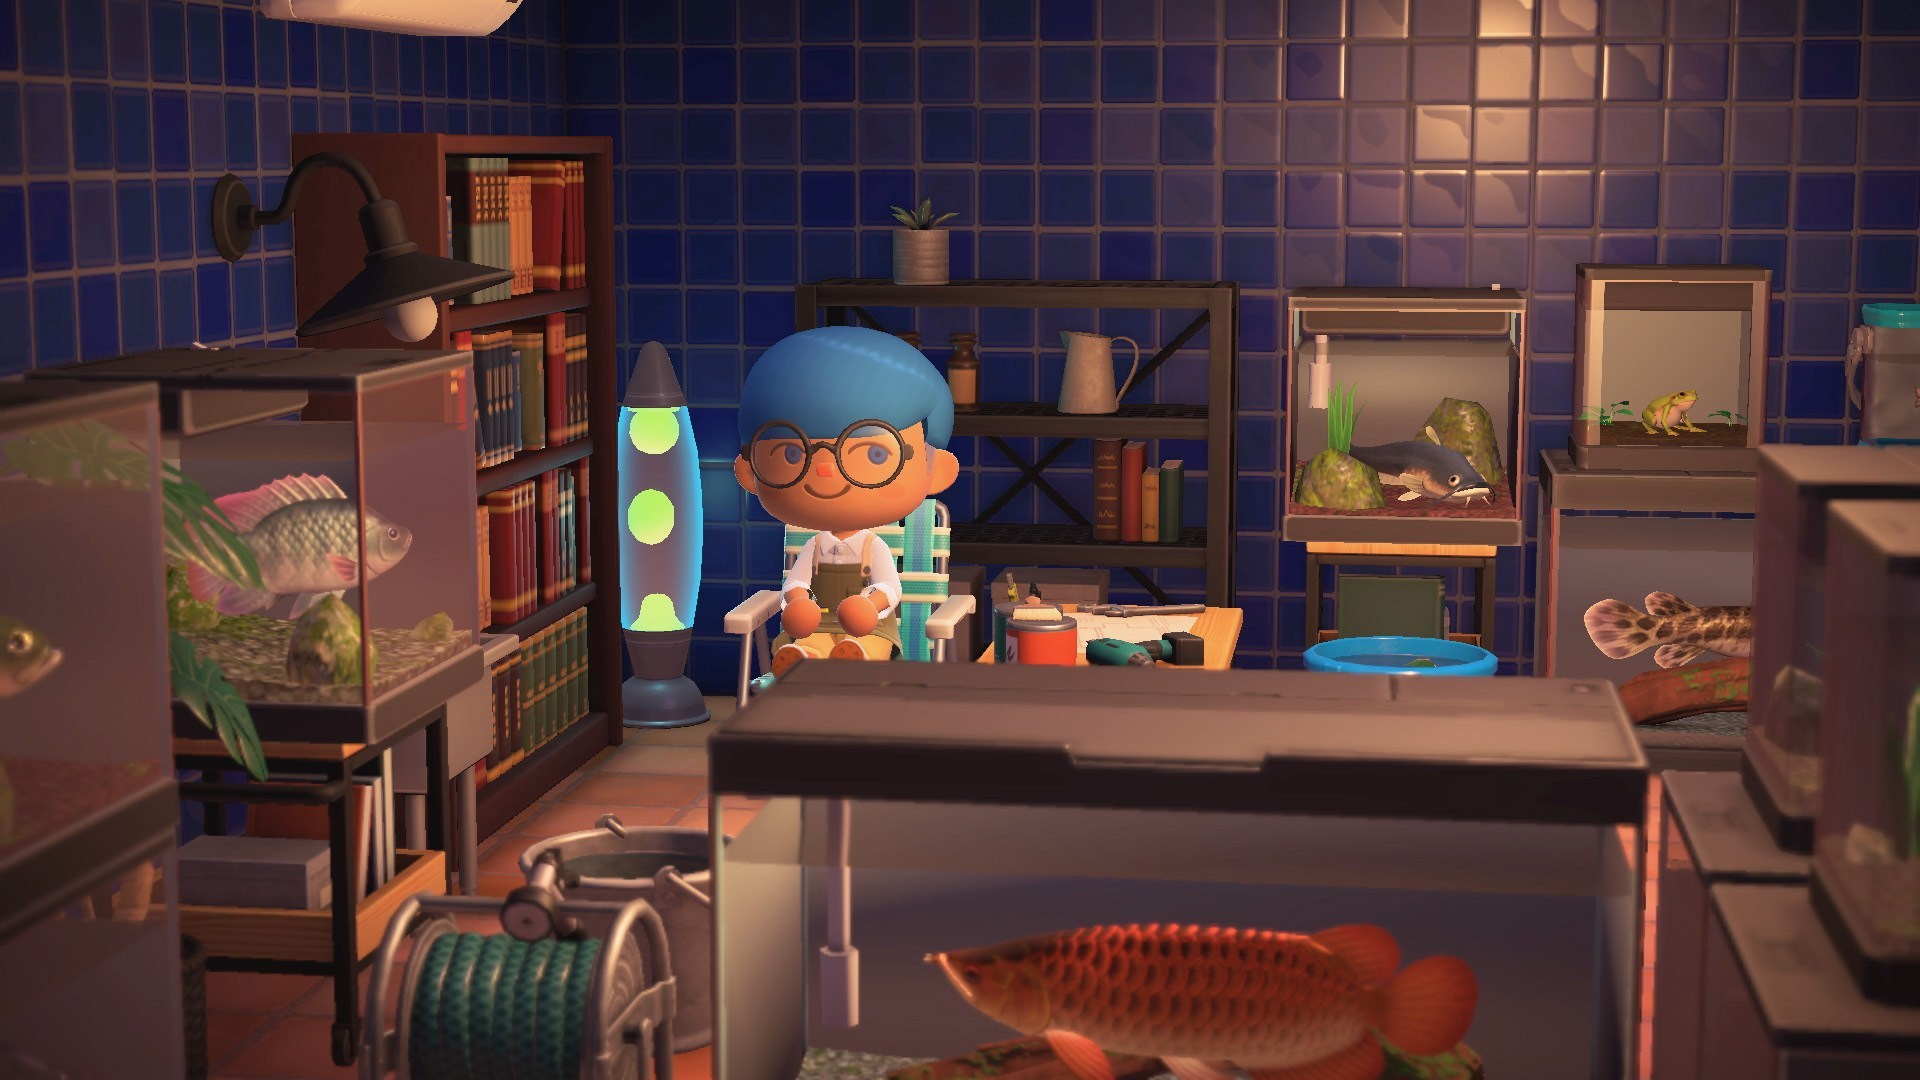 Fans paid up to £40 an hour to be Animal Crossing: New Horizons interior designer